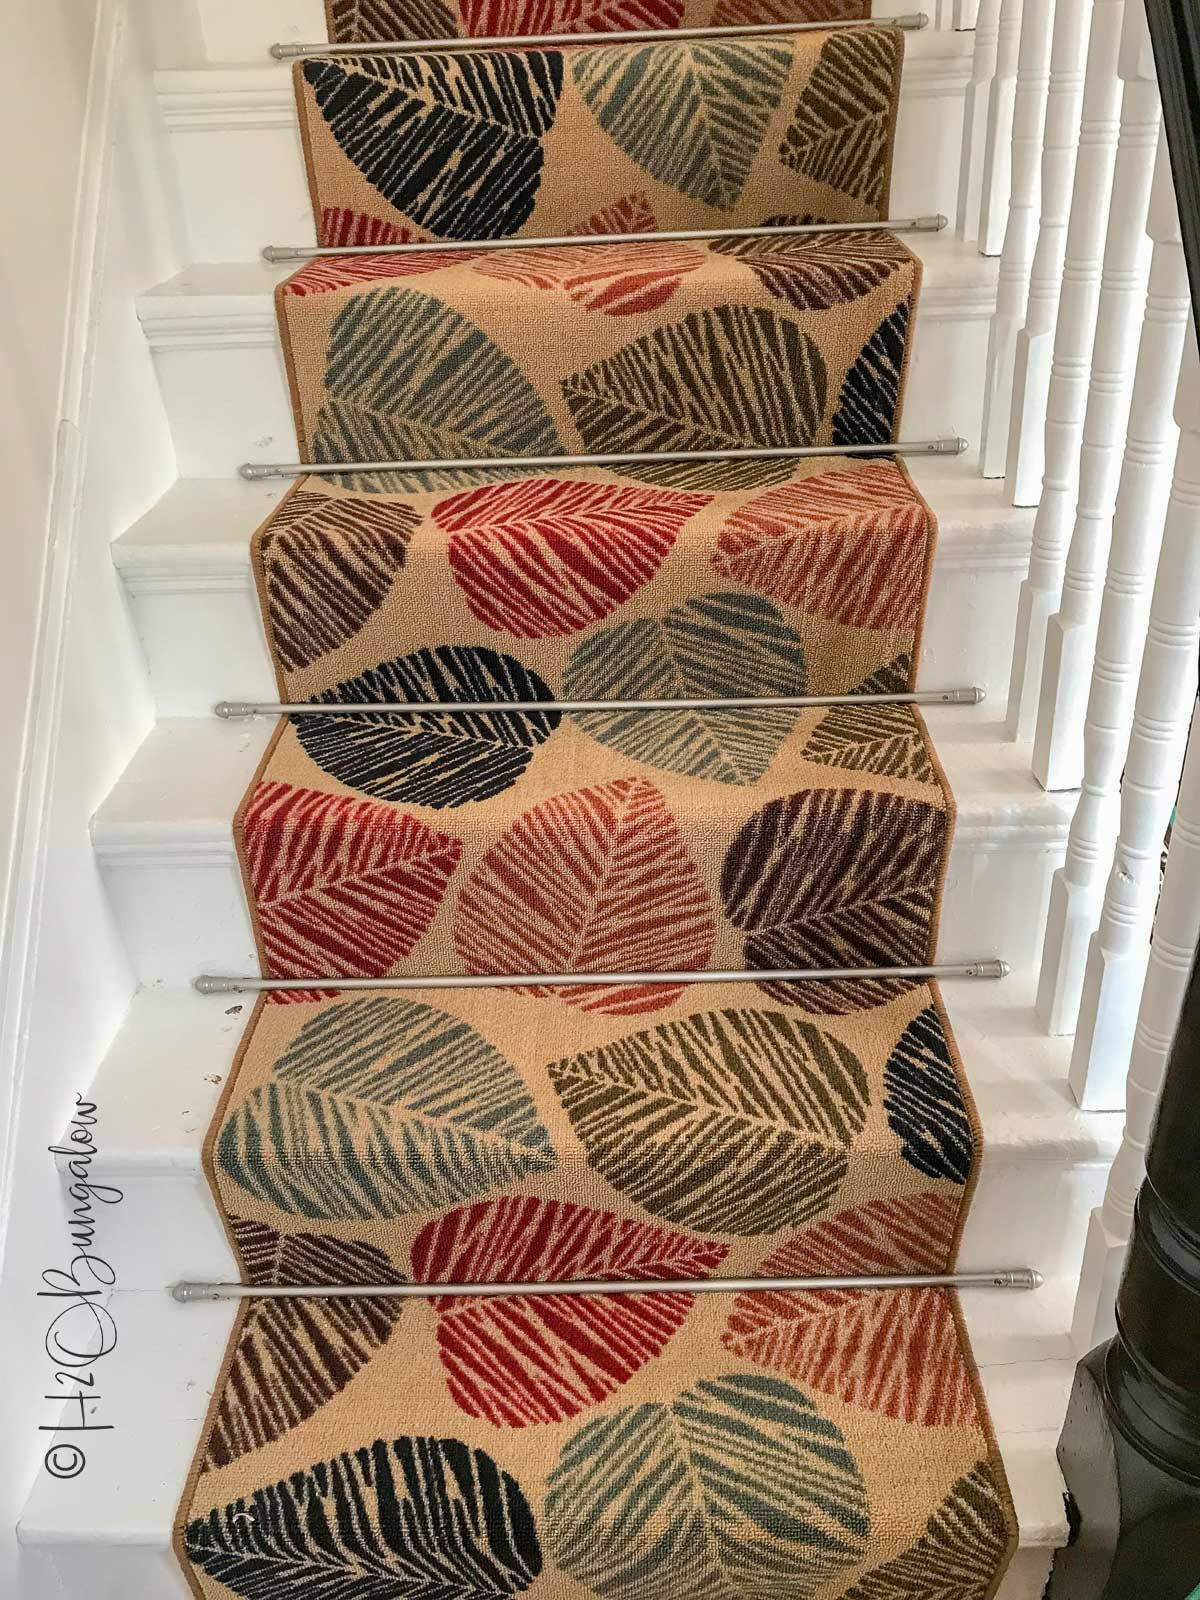 How to Install Carpet Runner on Stairs - H2OBungalow